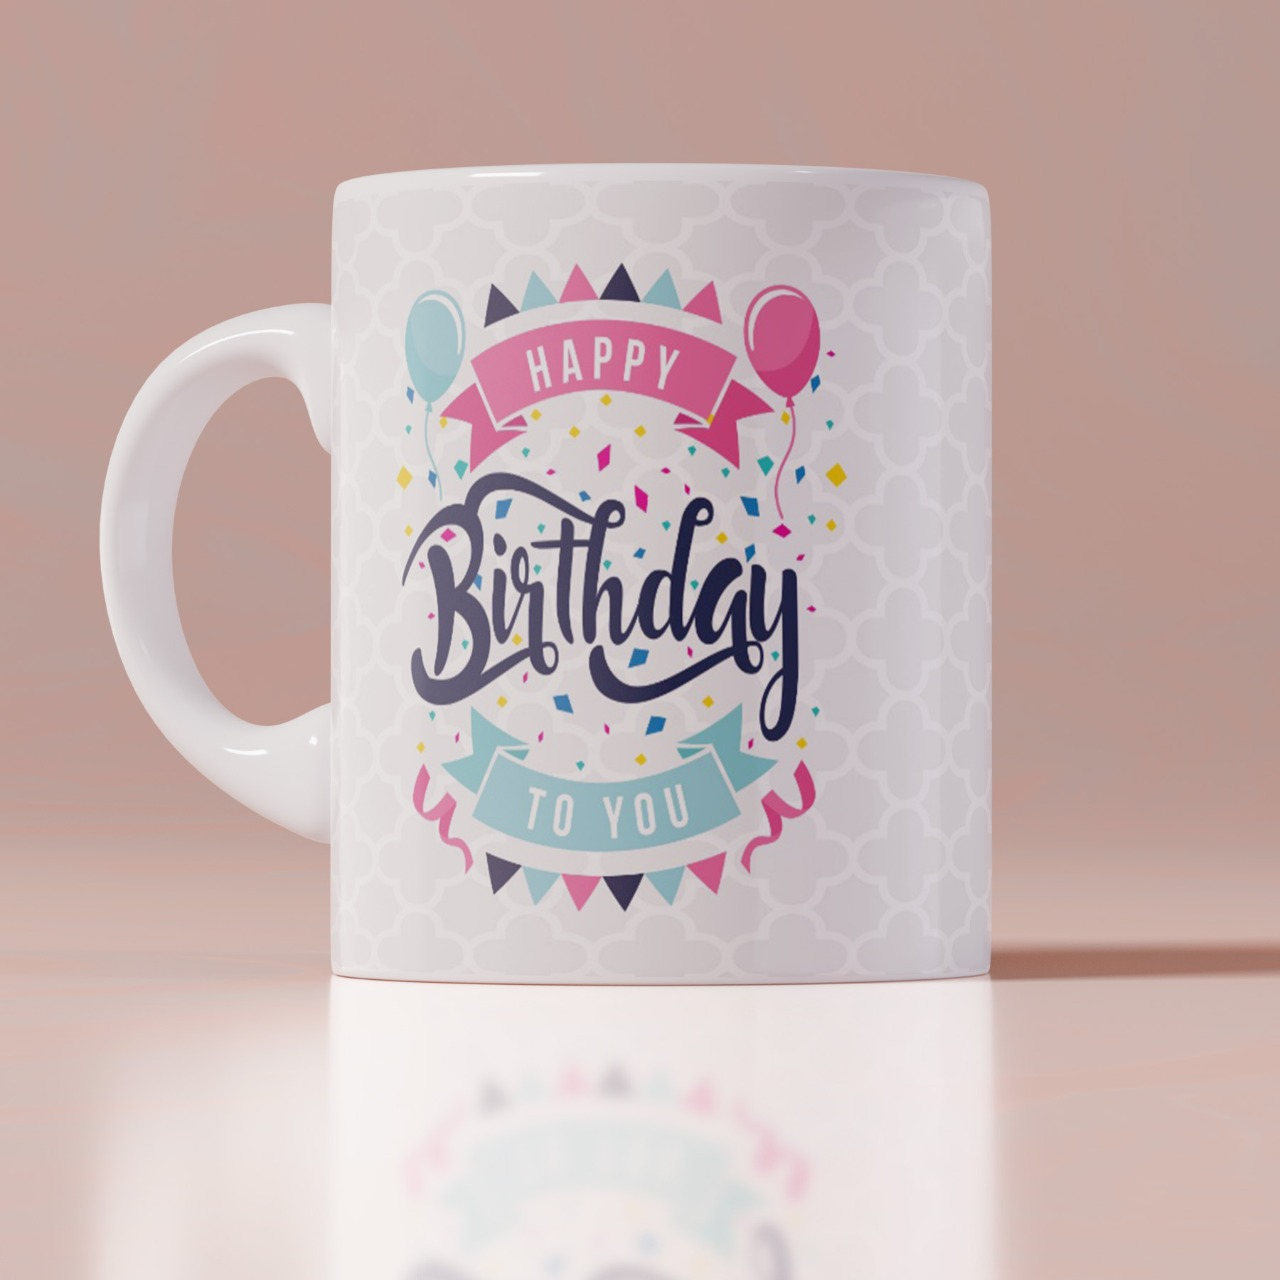 Happy Birthday To You Customized Coffee Mug